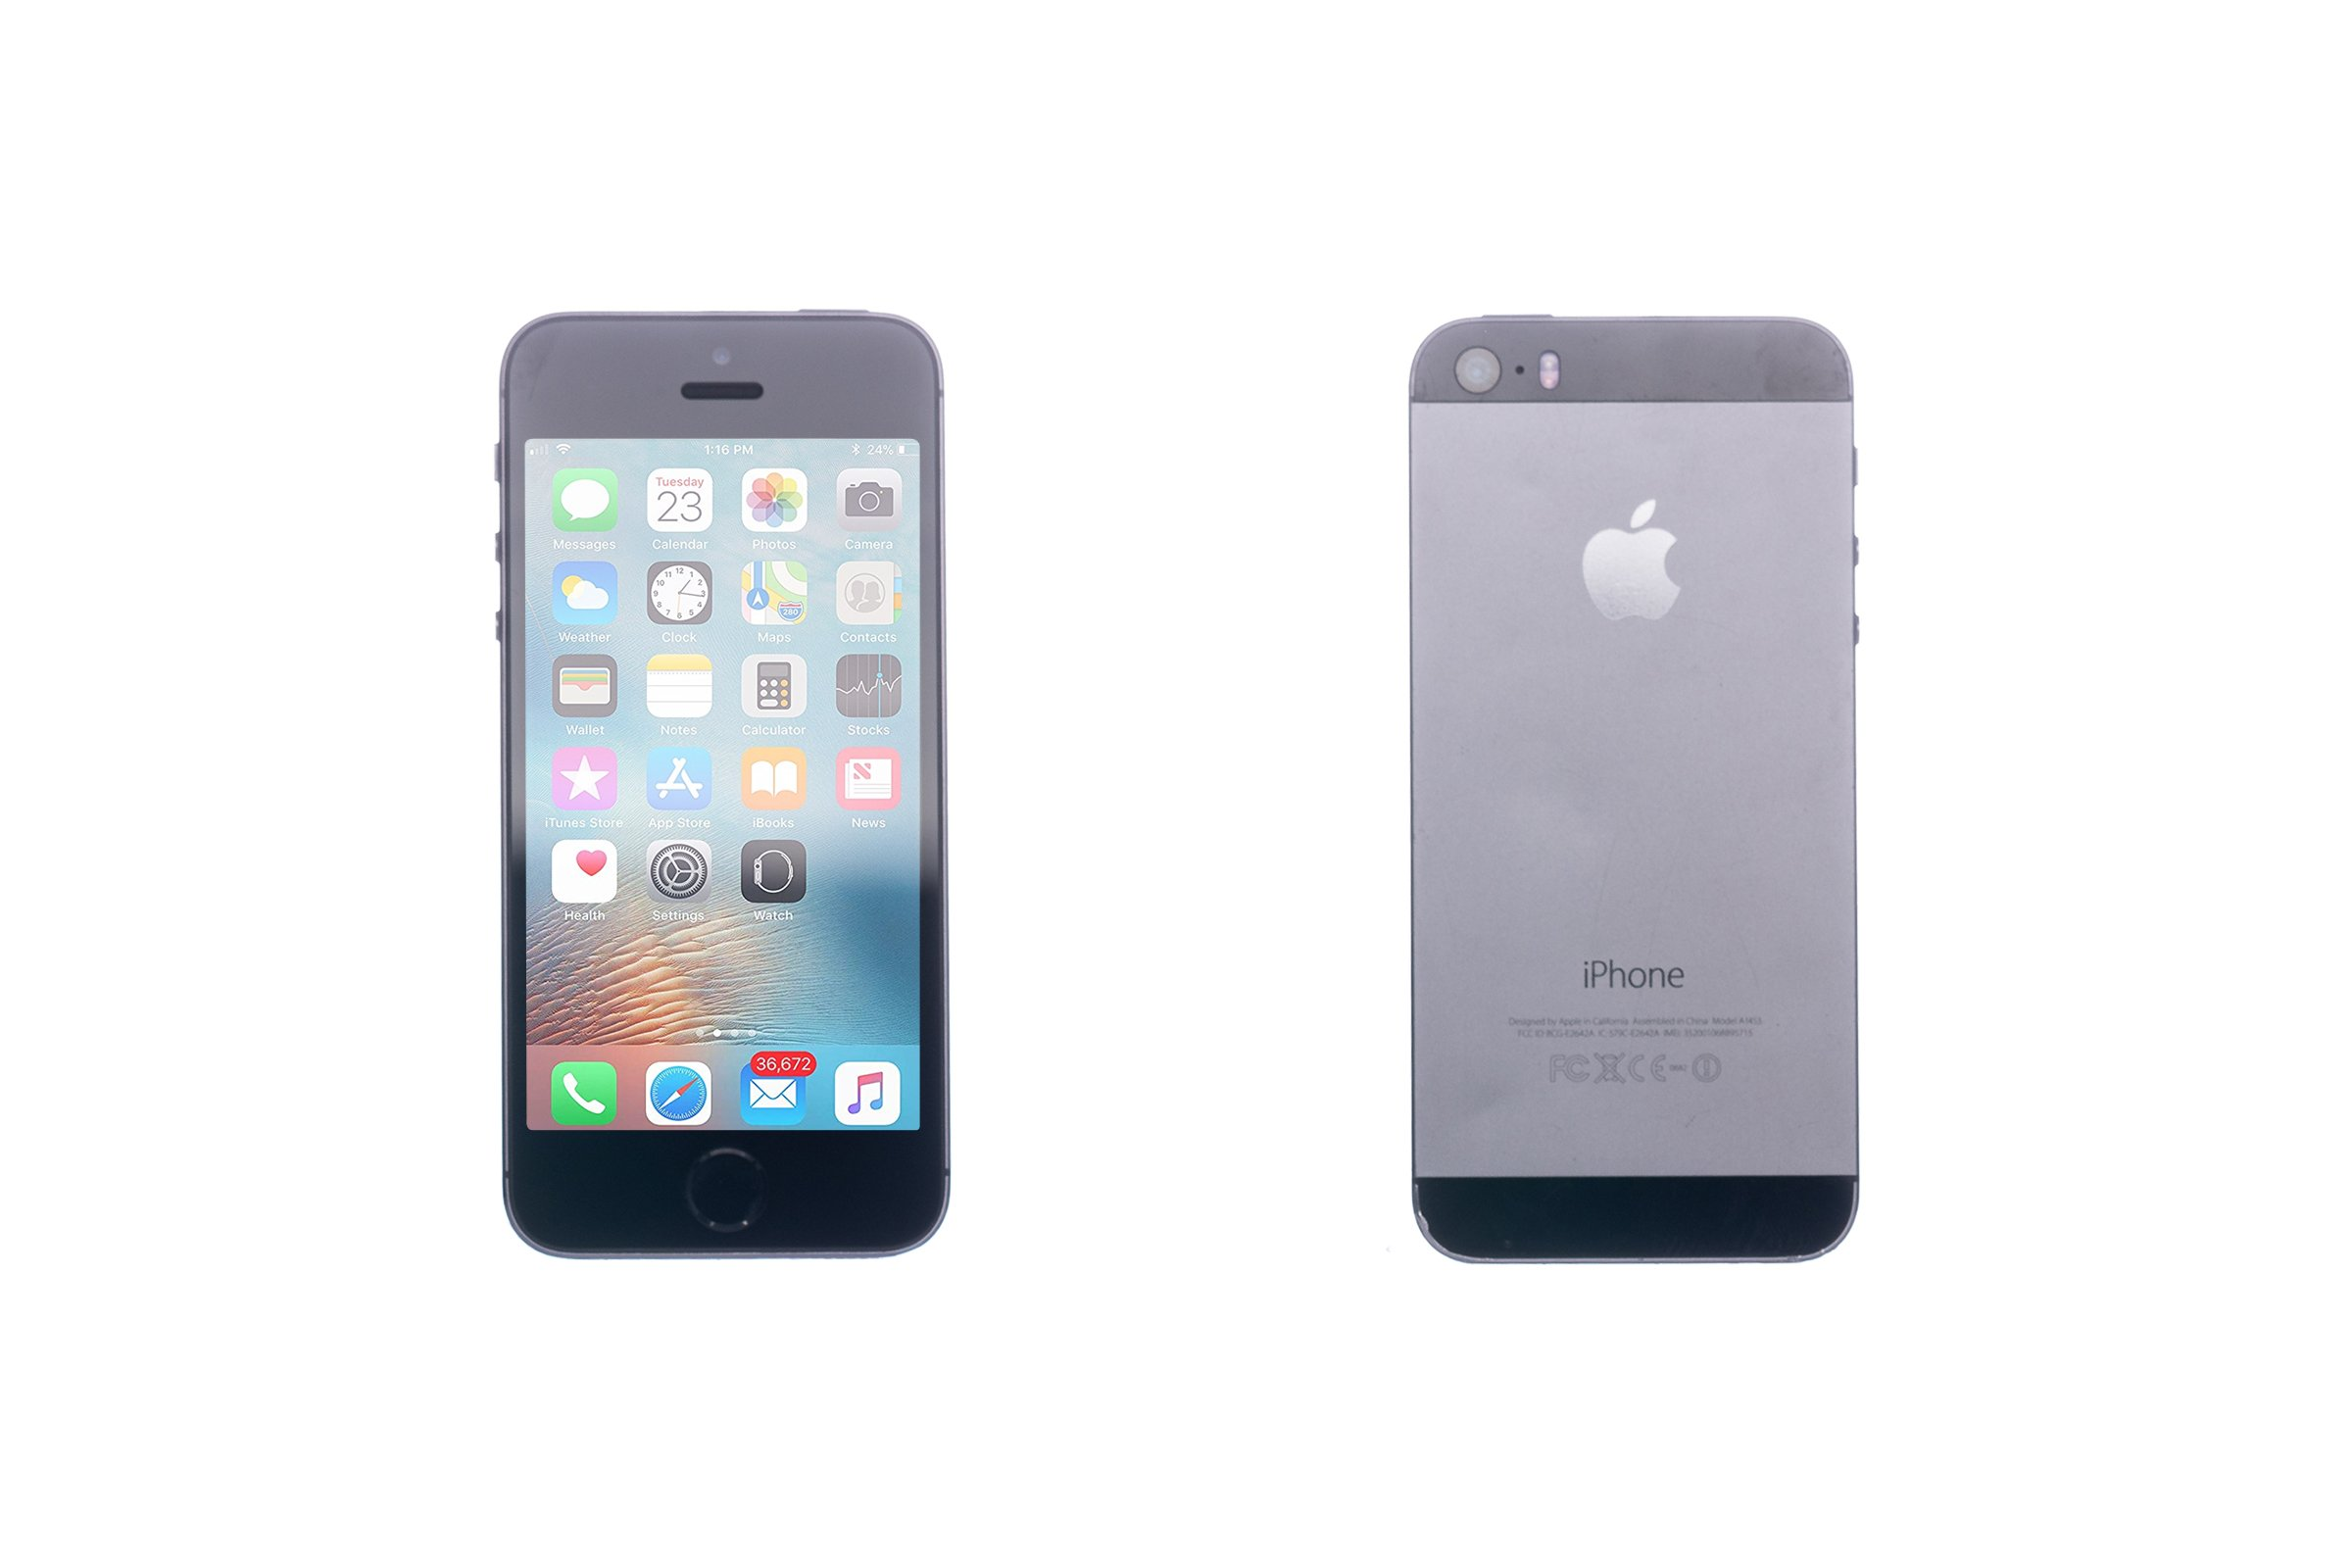 ecac7e66c2fc79 Apple Iphone 5S 64GB Space Grey A1453 Grade C | Mobiles and ...